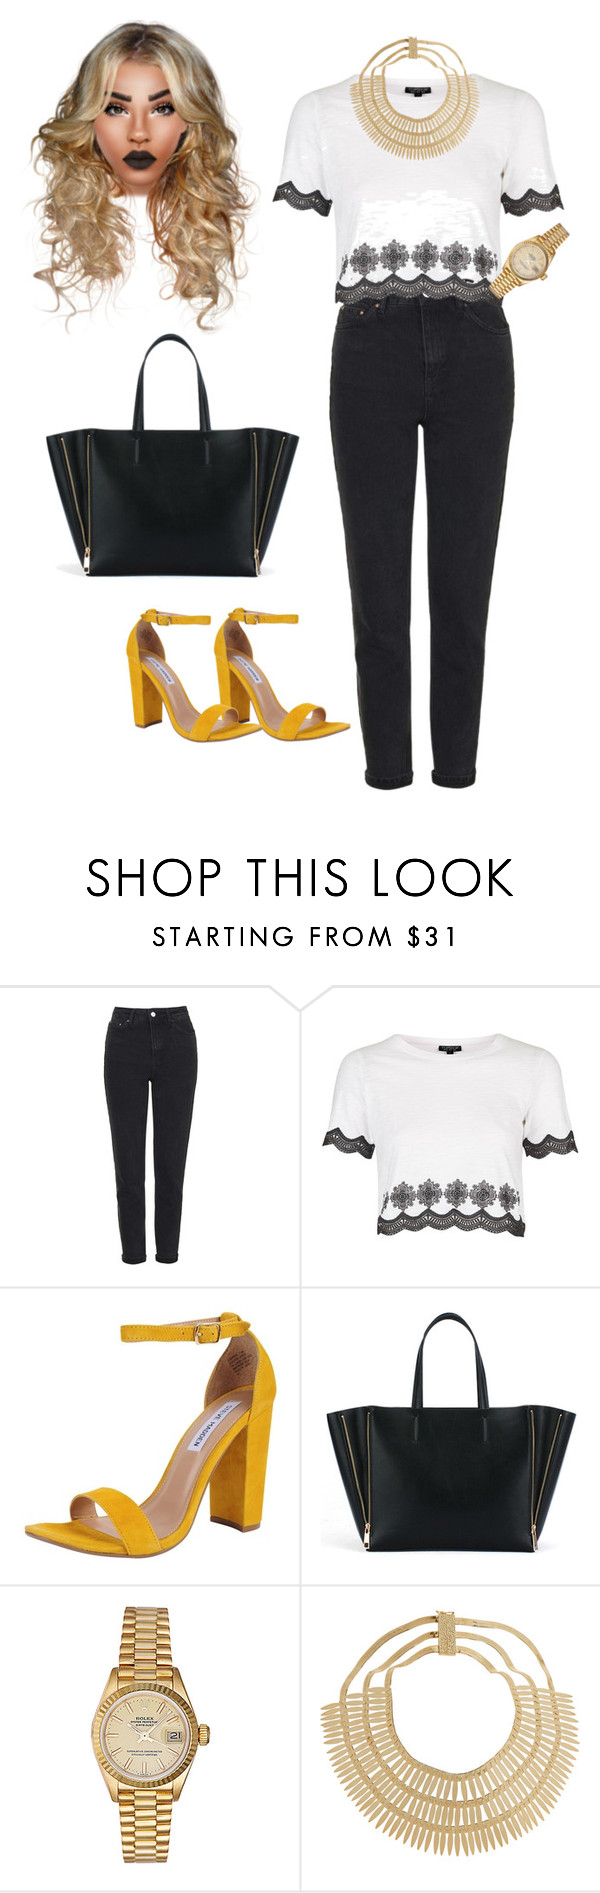 """Untitled #85"" by priscillay5 on Polyvore featuring Topshop, Steve Madden, Rolex and Rosantica"